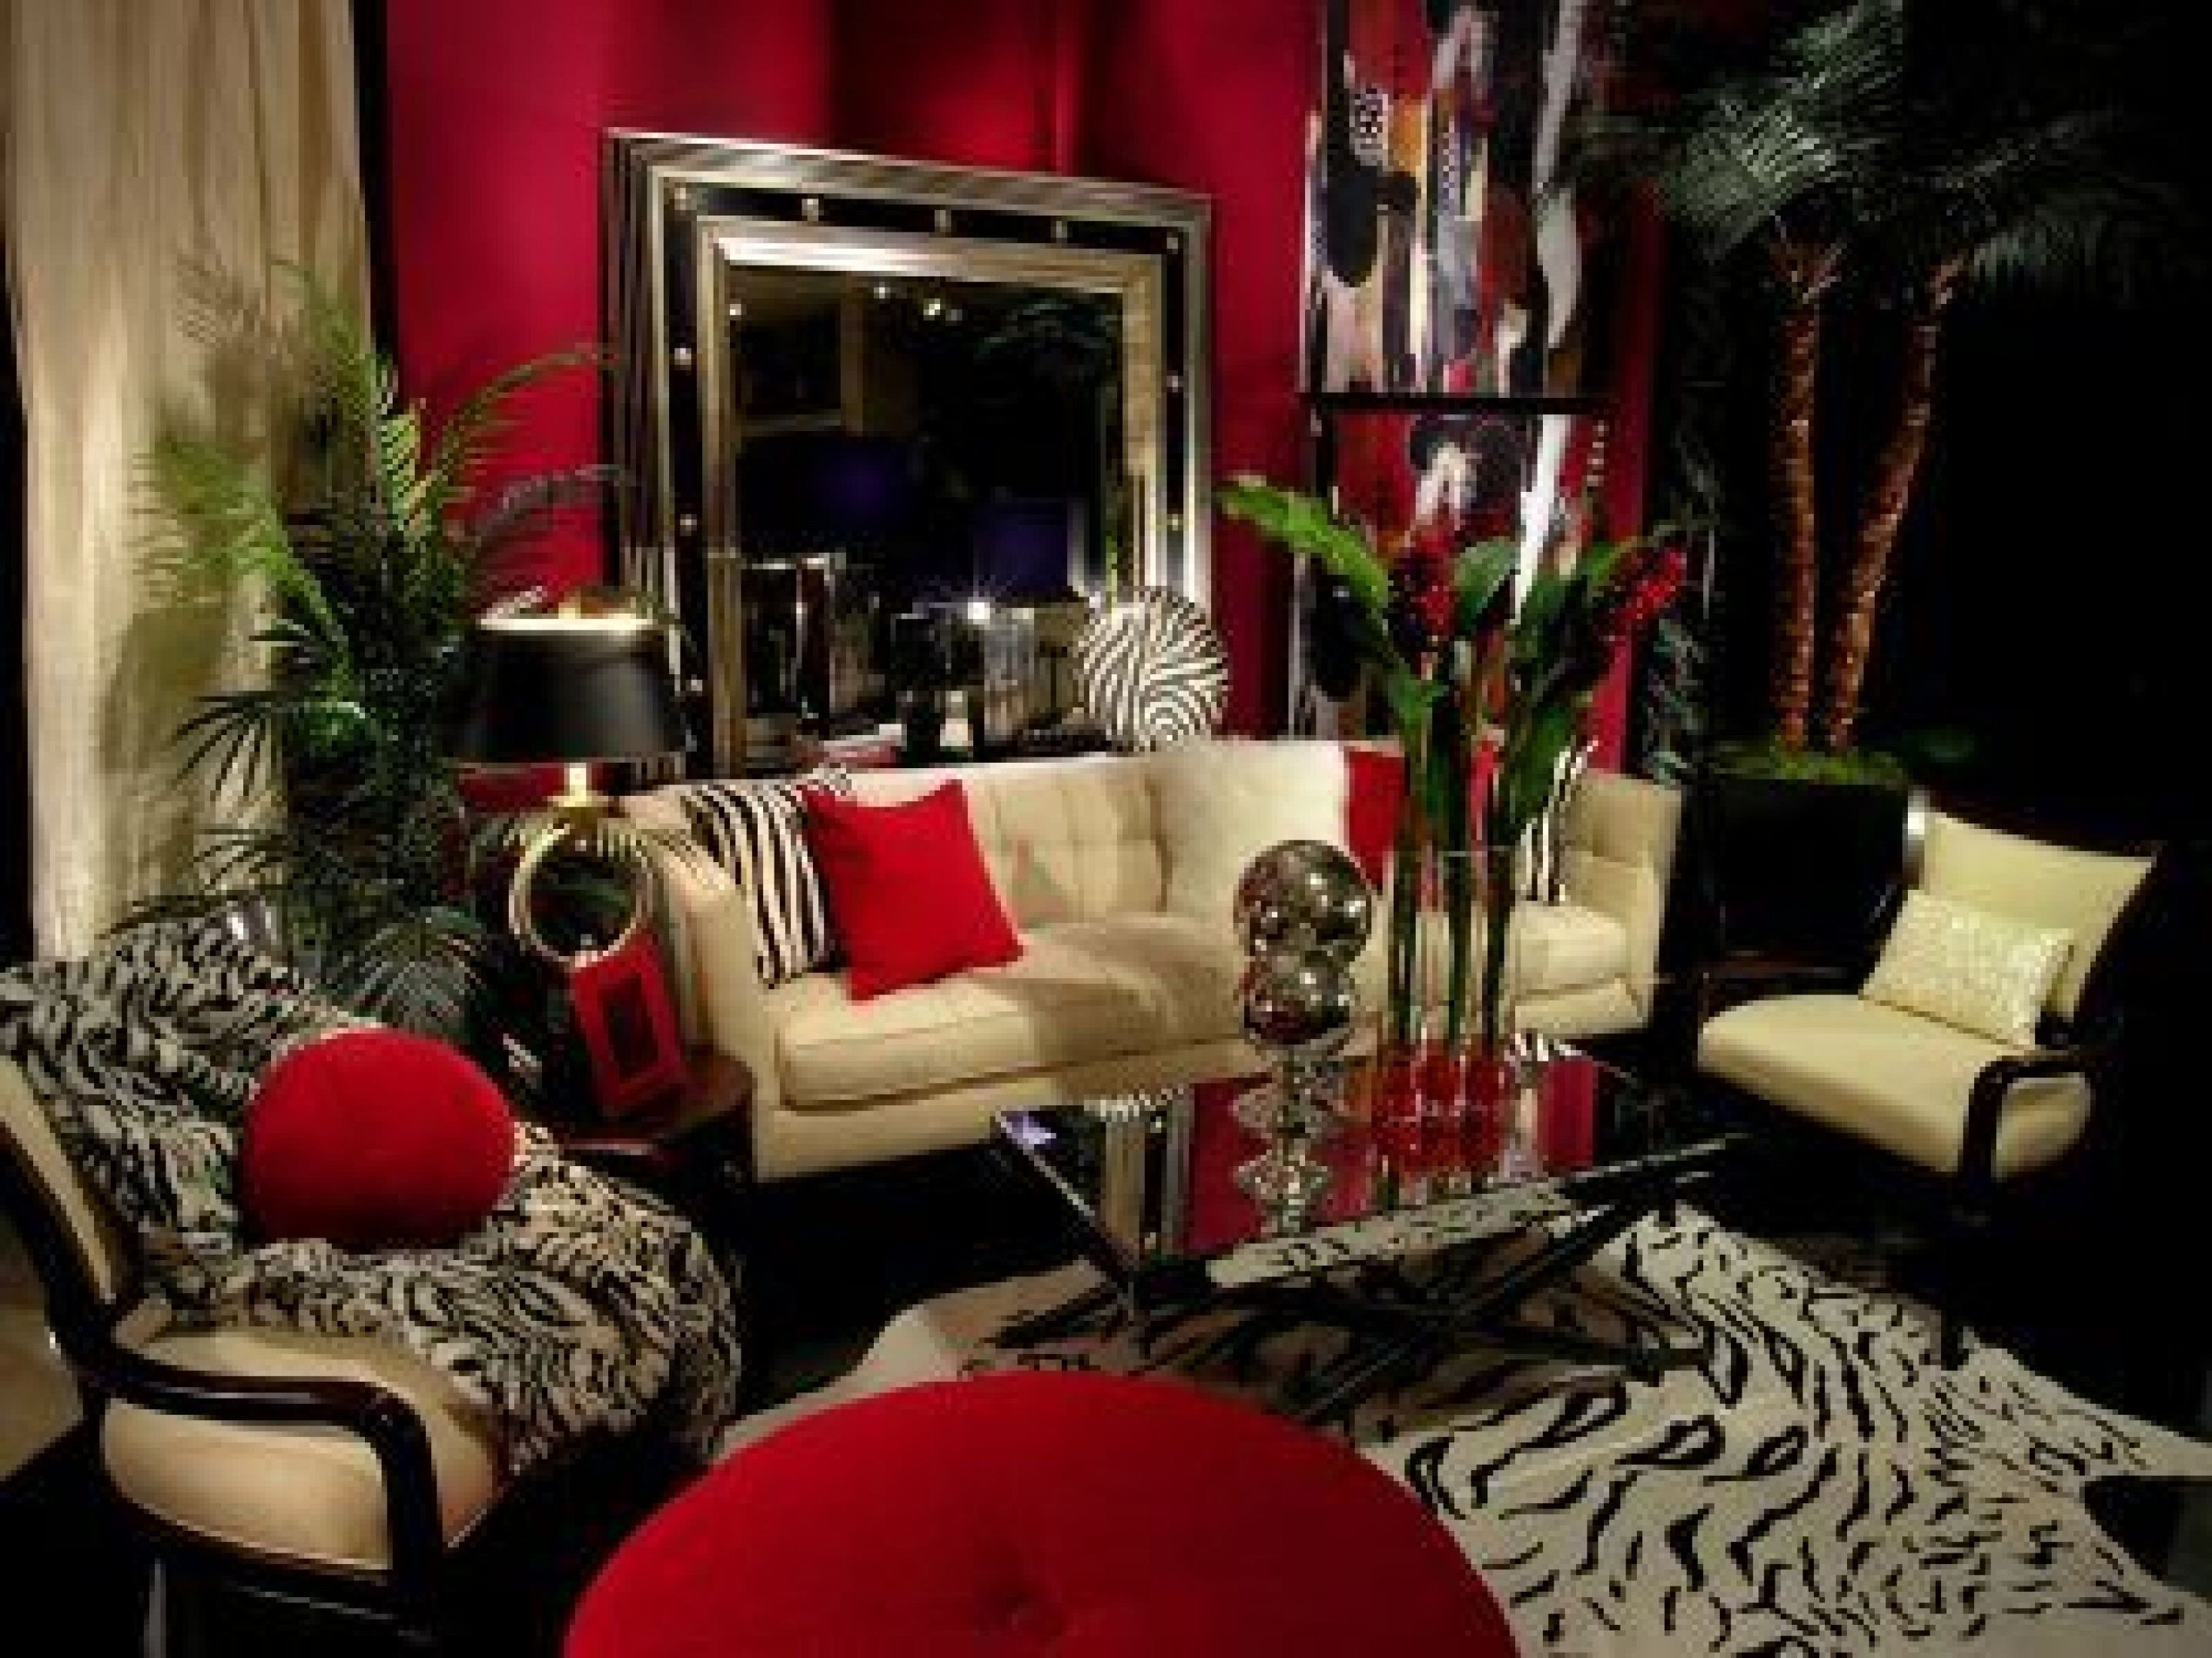 Red And Black Home Decor Awesome Black Red Bedroom Jungle Google Search Home Decor Ideas Red Bedroom Decor Safari Living Rooms Zebra Living Room #red #and #black #living #room #decorating #ideas